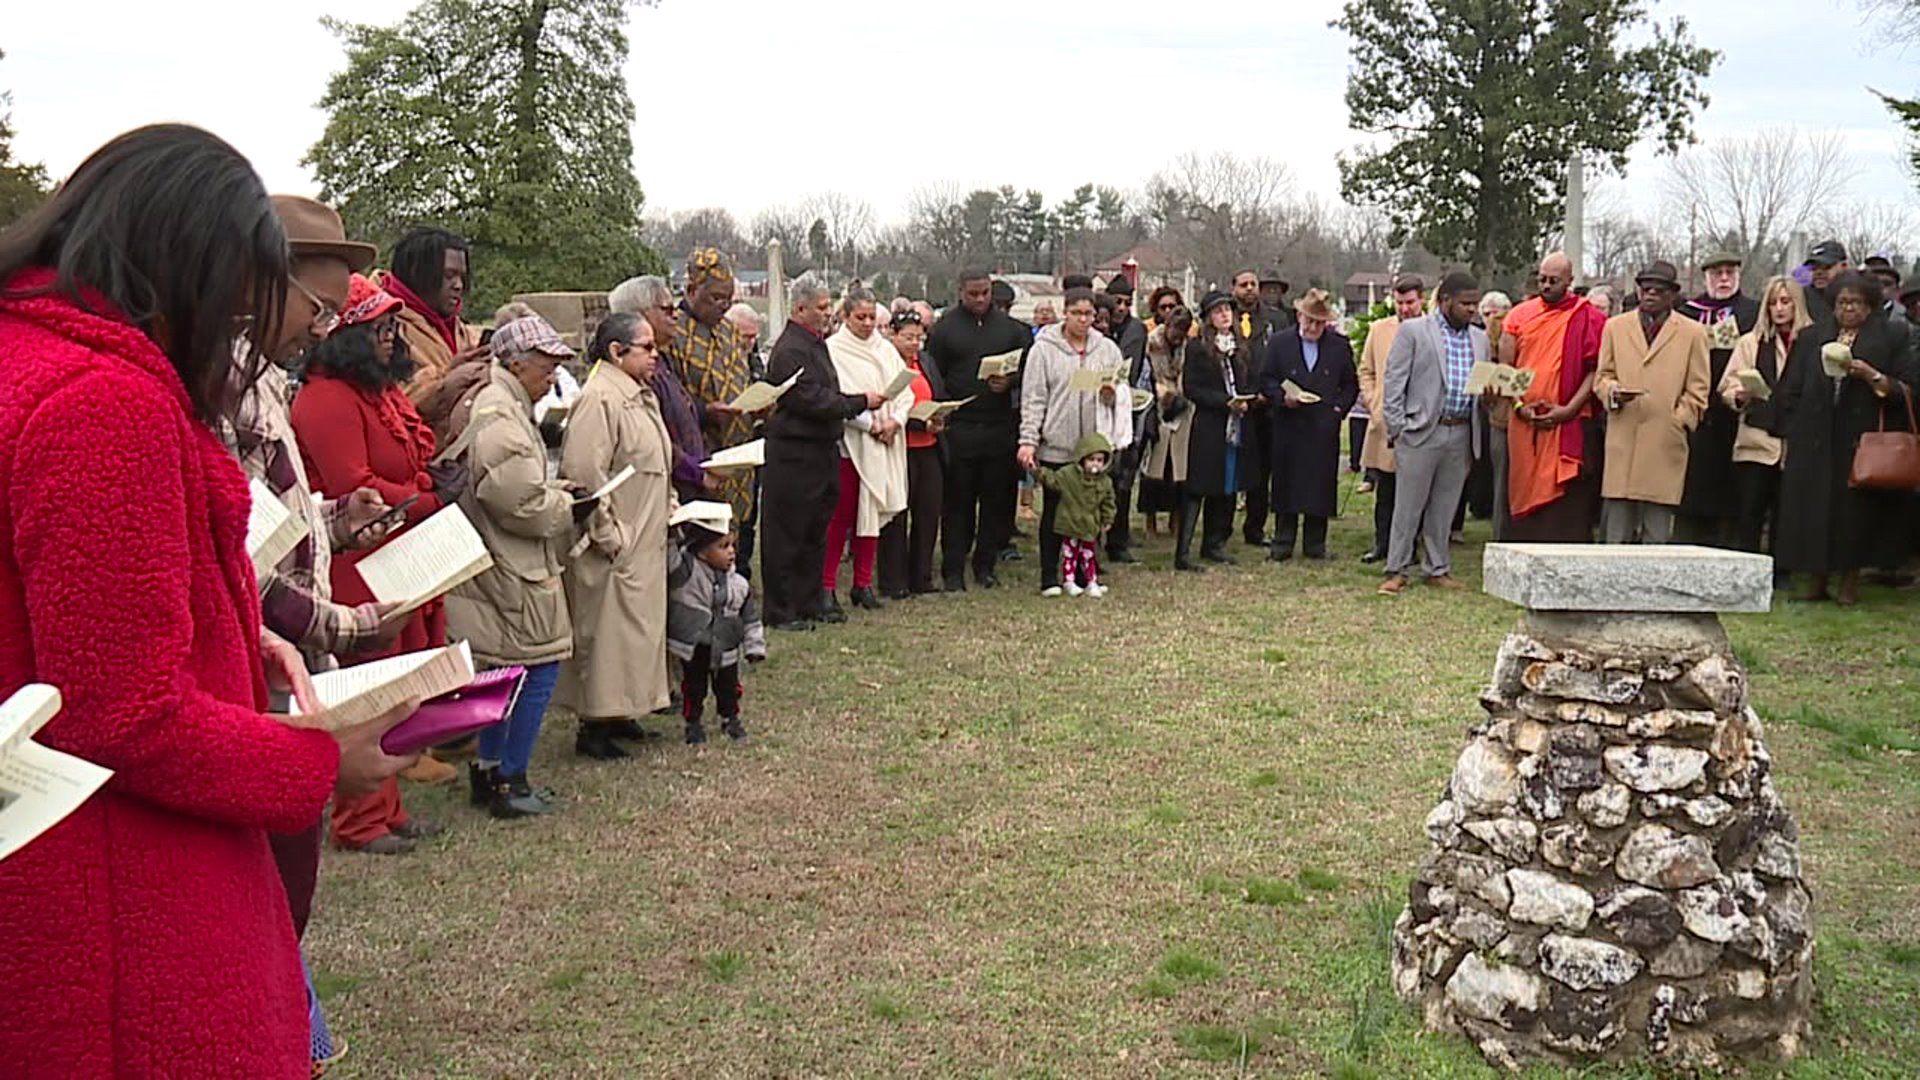 Lexington memorial service honors slaves